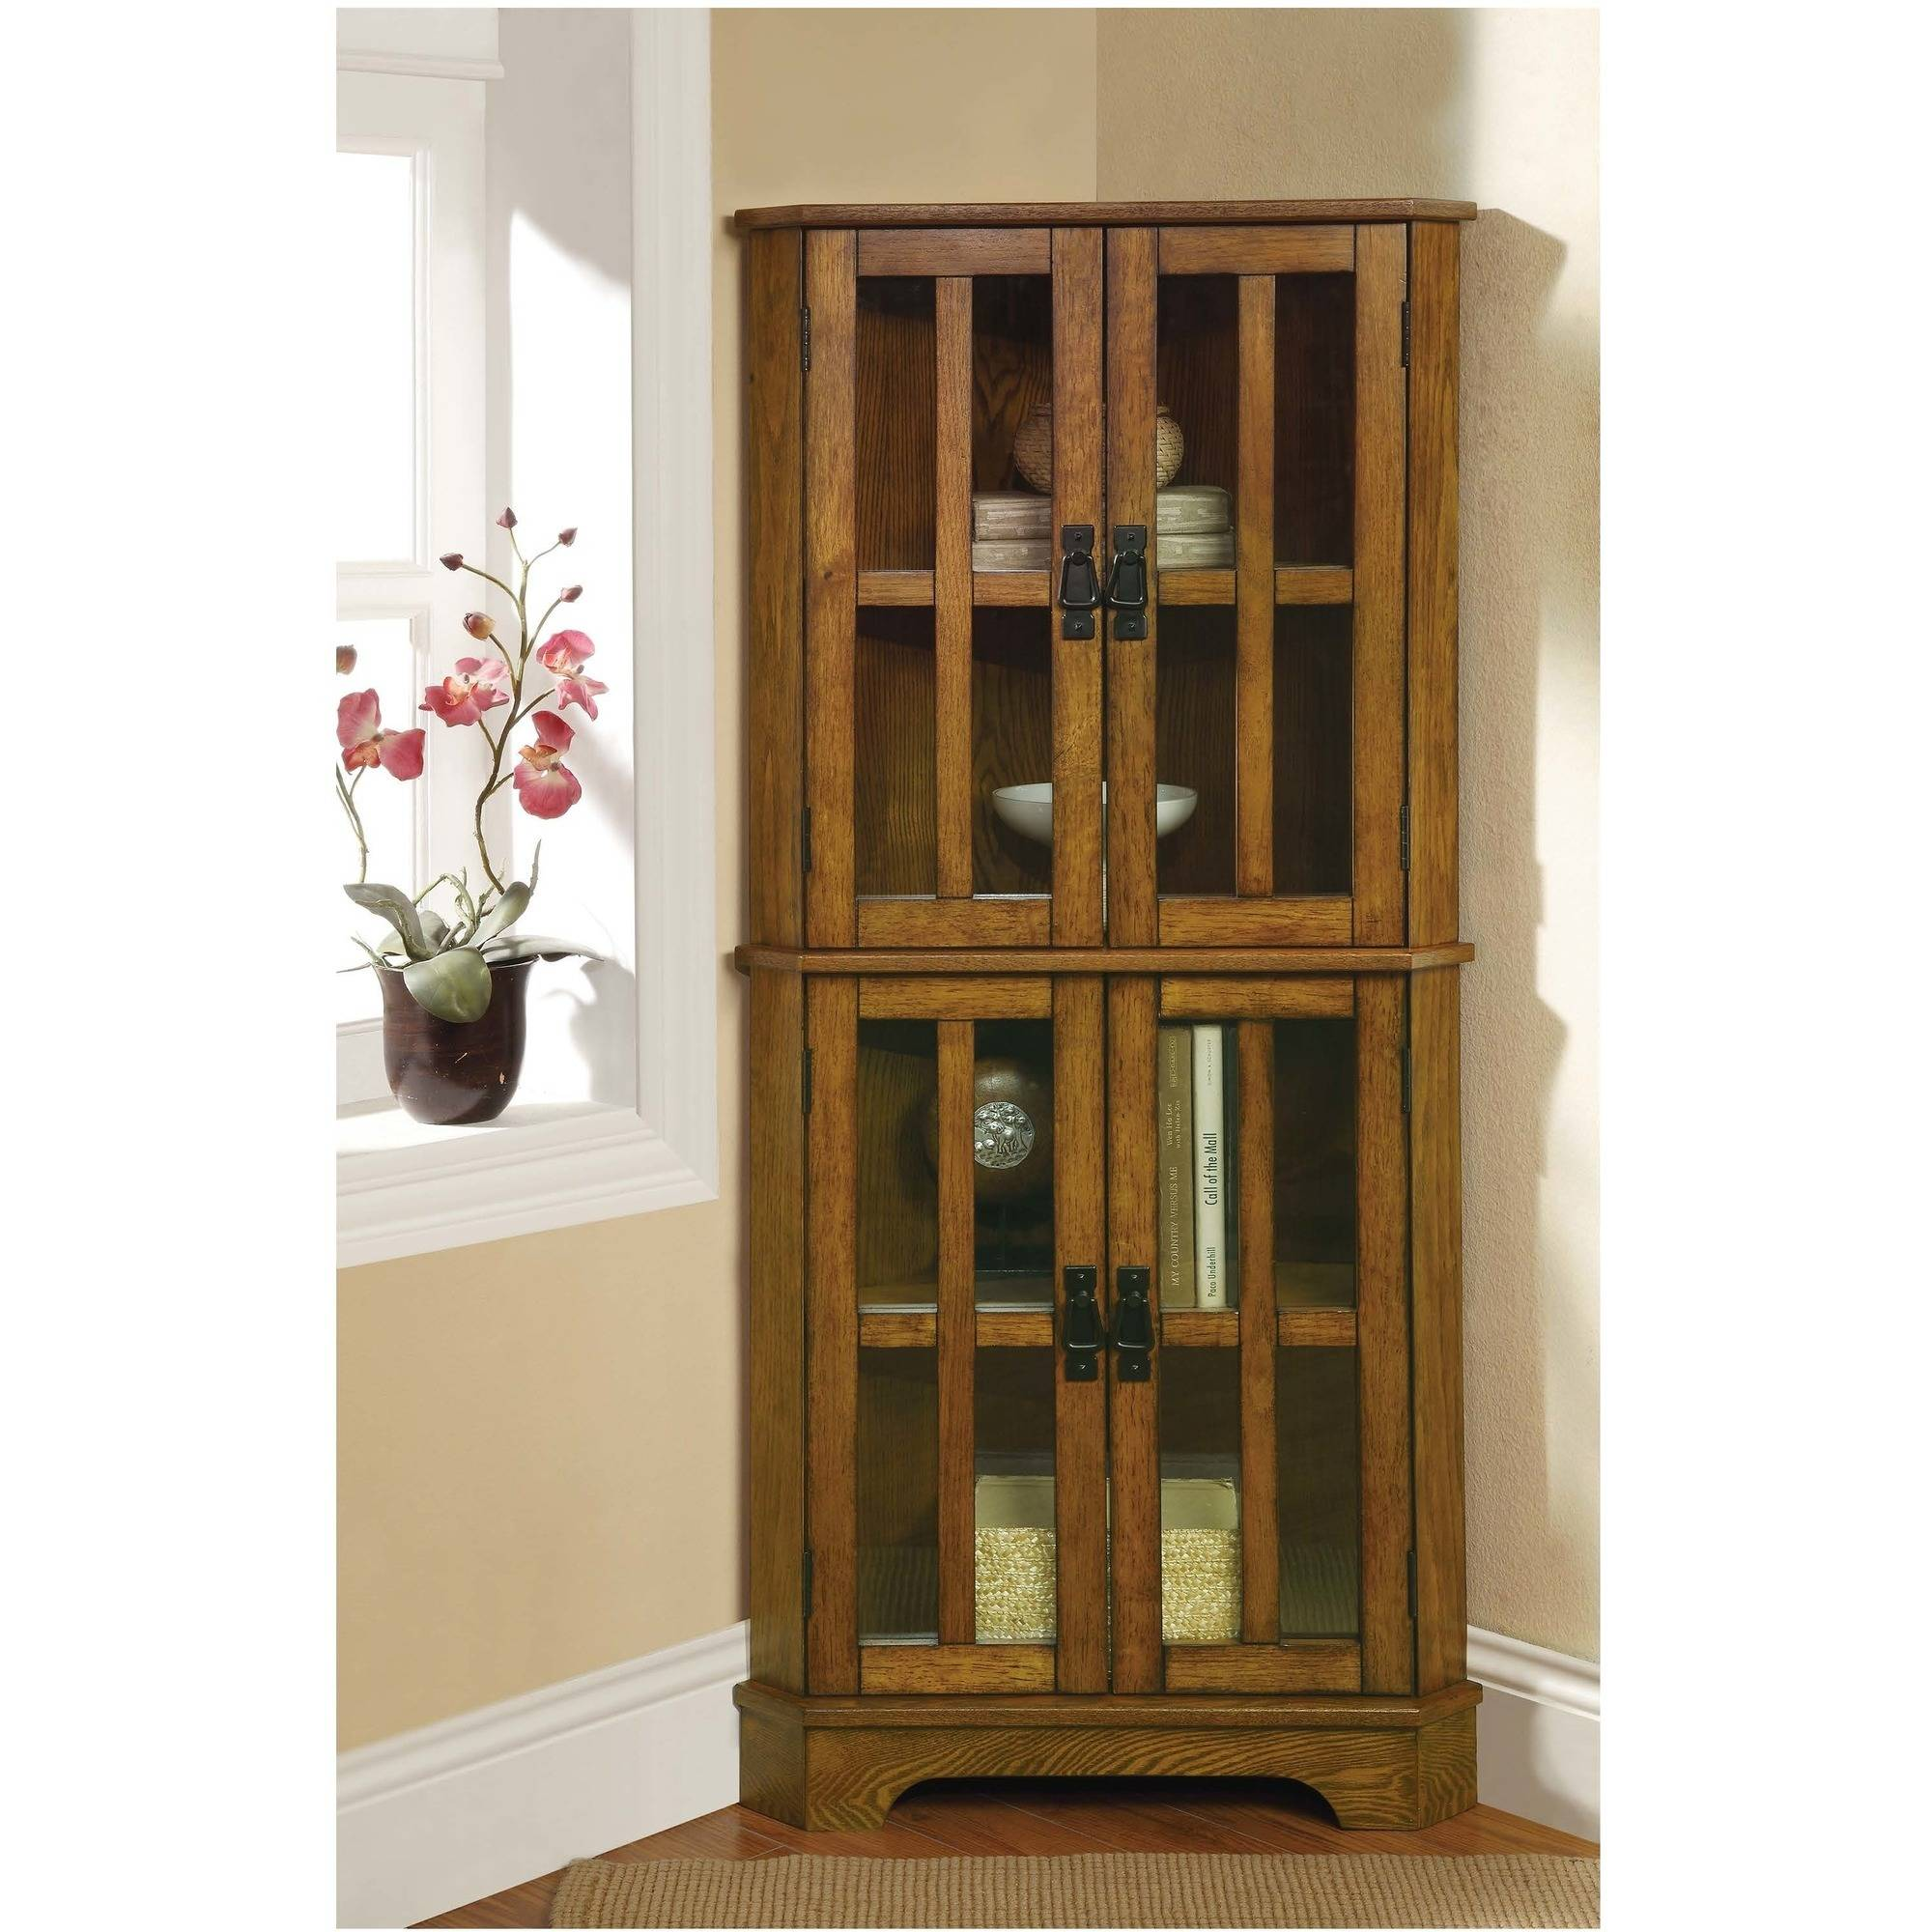 Coaster Company Curio Cabinet with Window Panel Styled Doors by Coaster Company